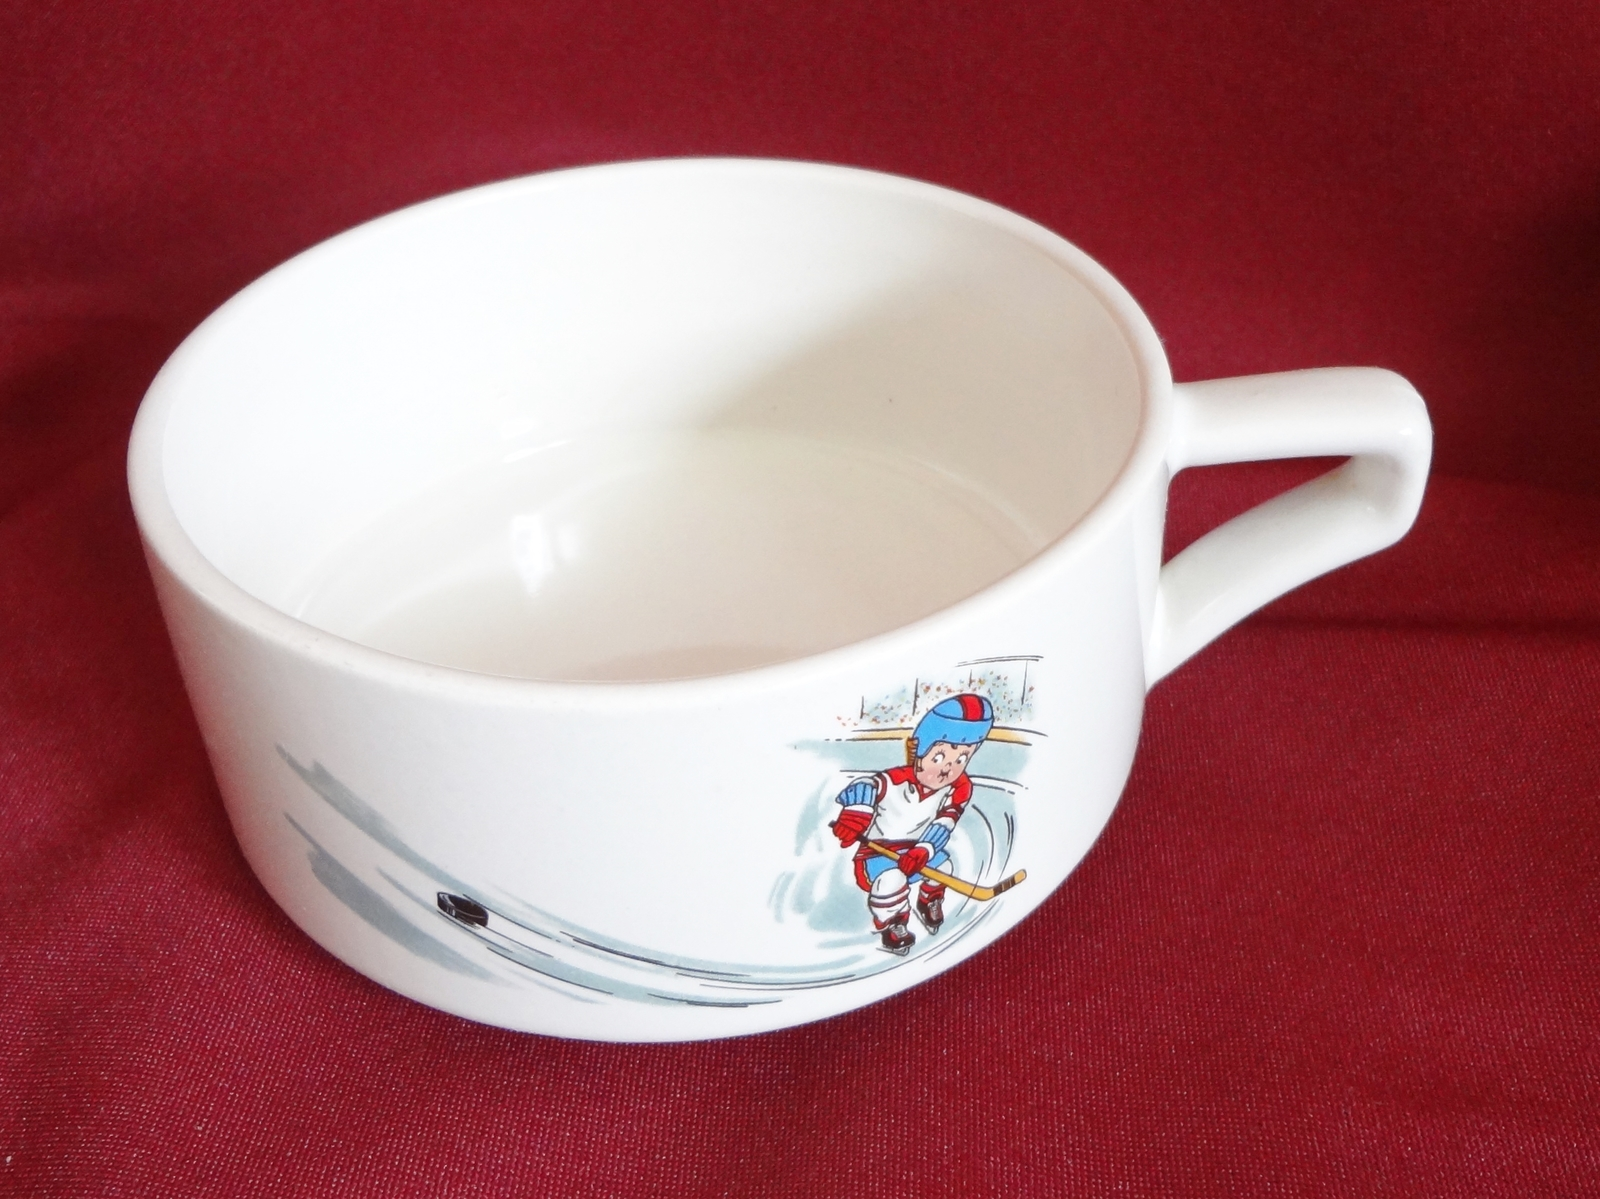 Campbell Kid 10 oz Handled Soup Mug Bowl Cup Ice Hockey Sports